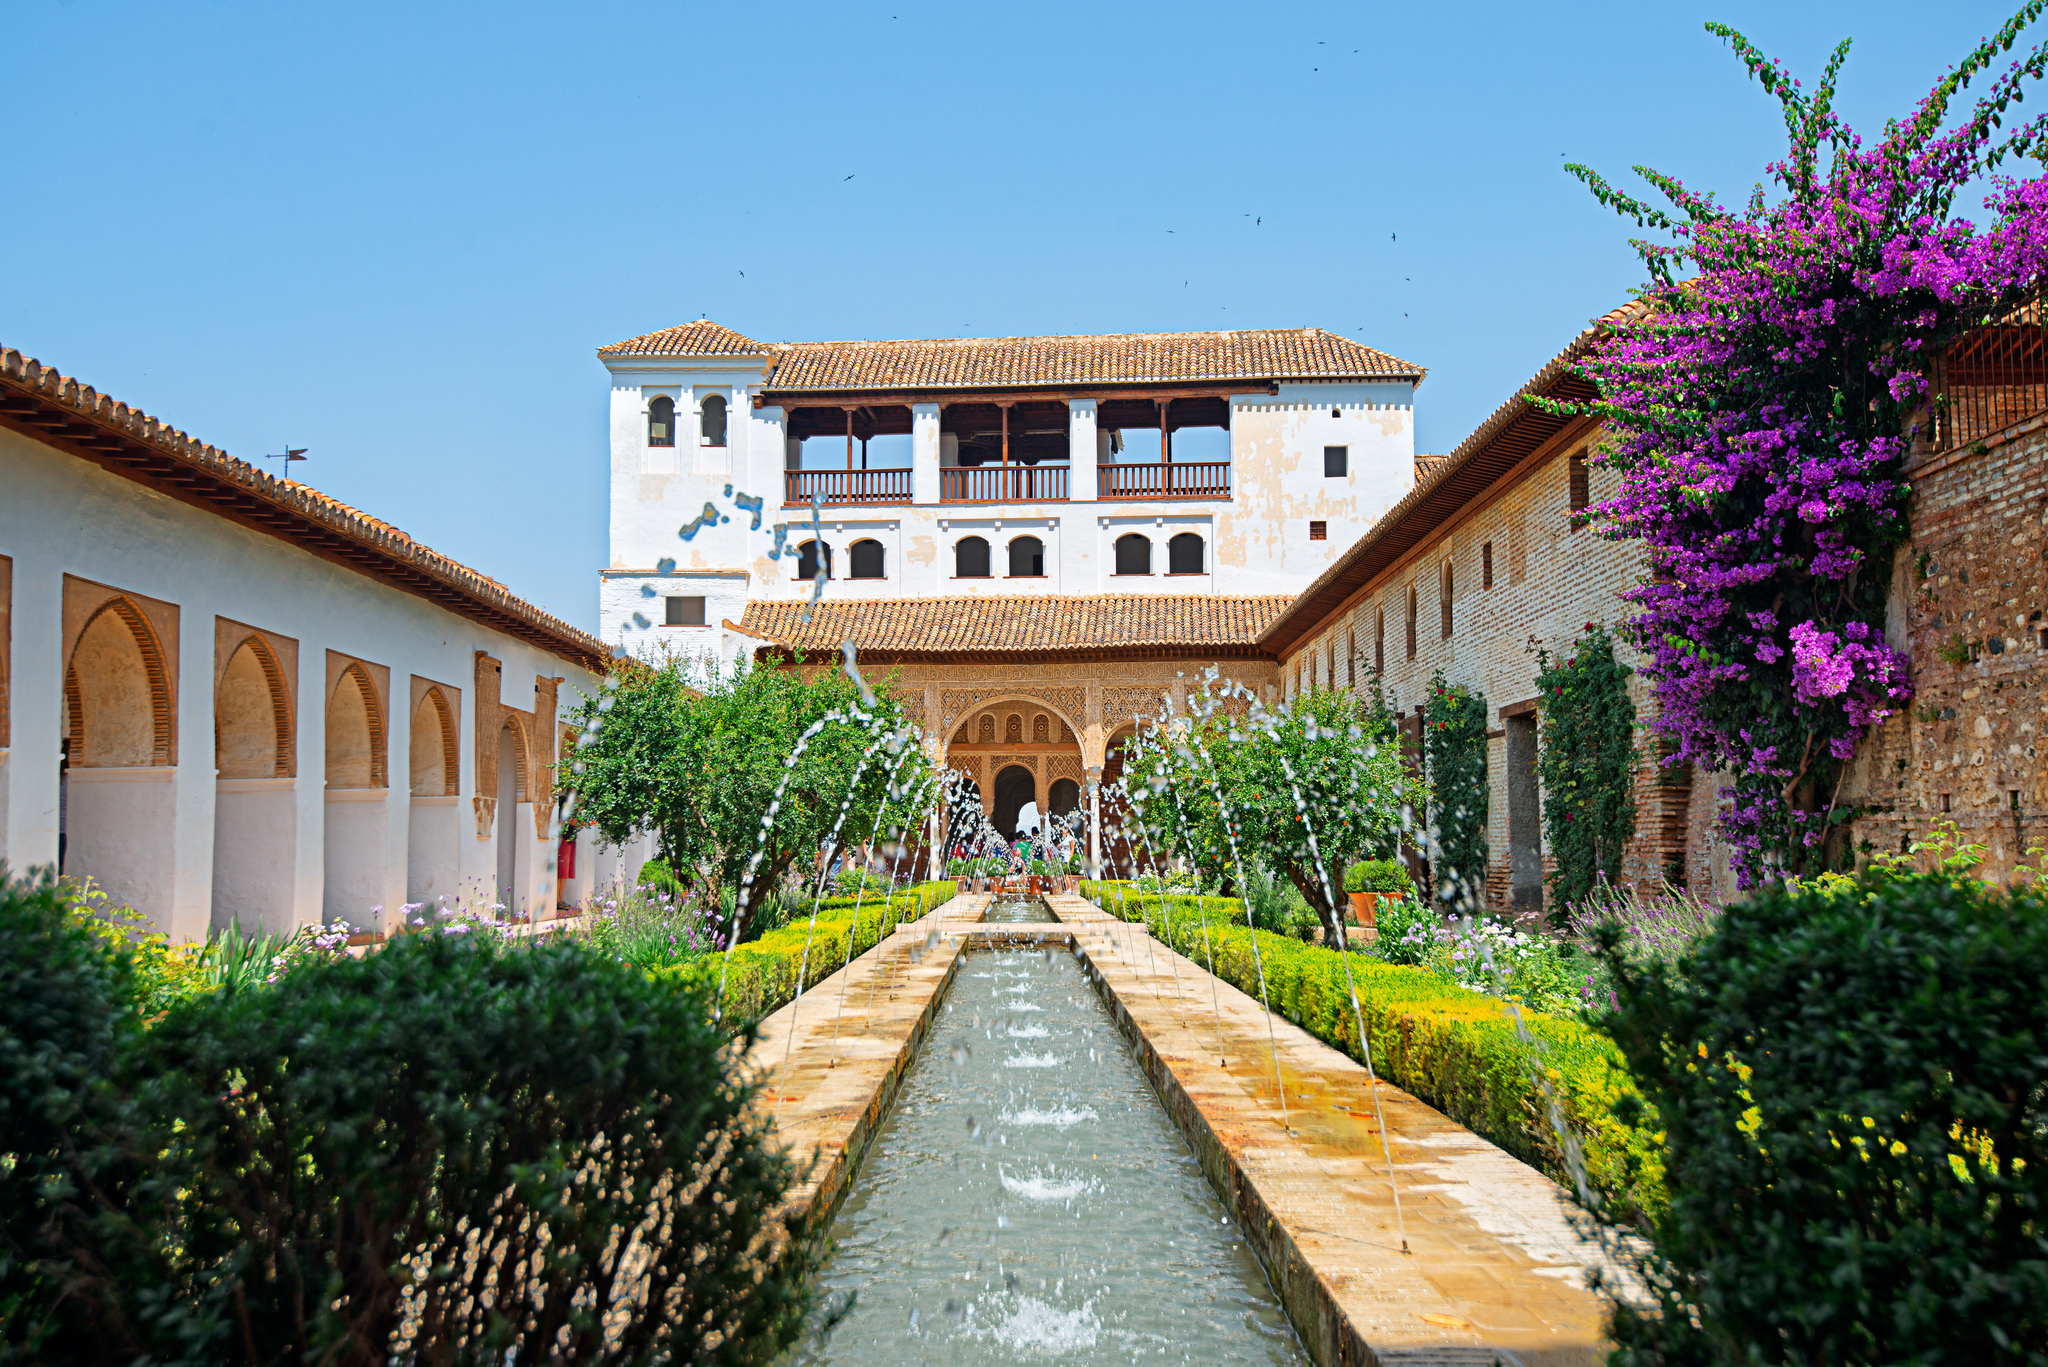 The palacio de generalife palace in granada thousand for El jardin de gomerez granada